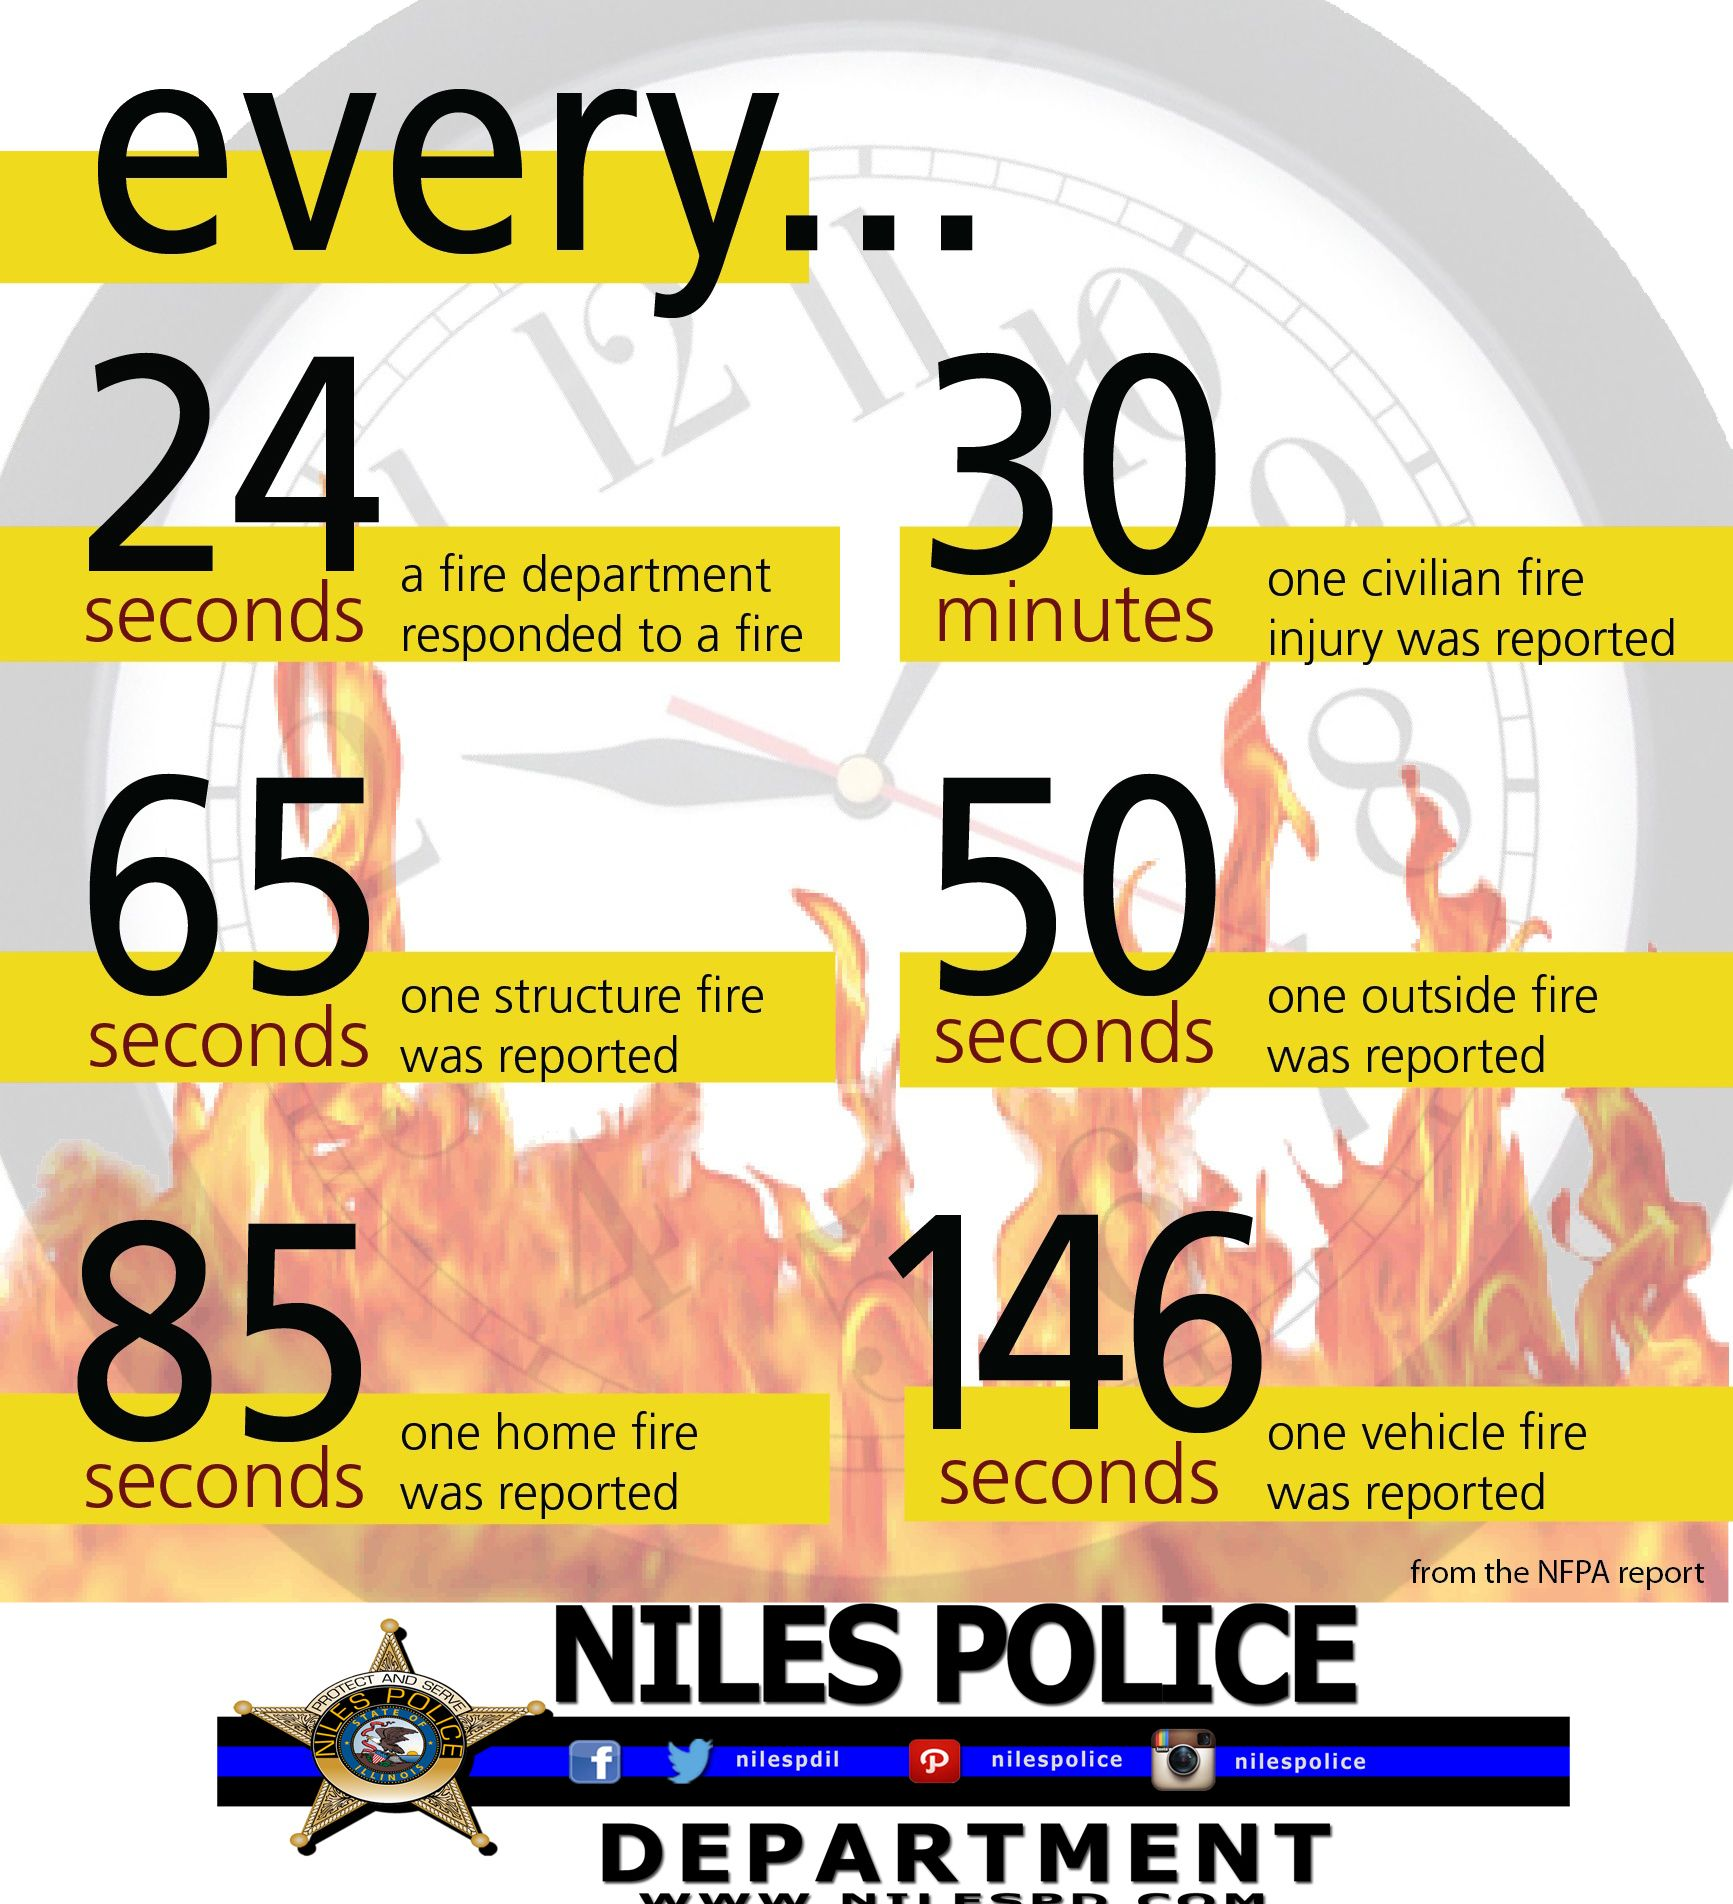 Auto Theft Facts Fire safety tips, Fire prevention week